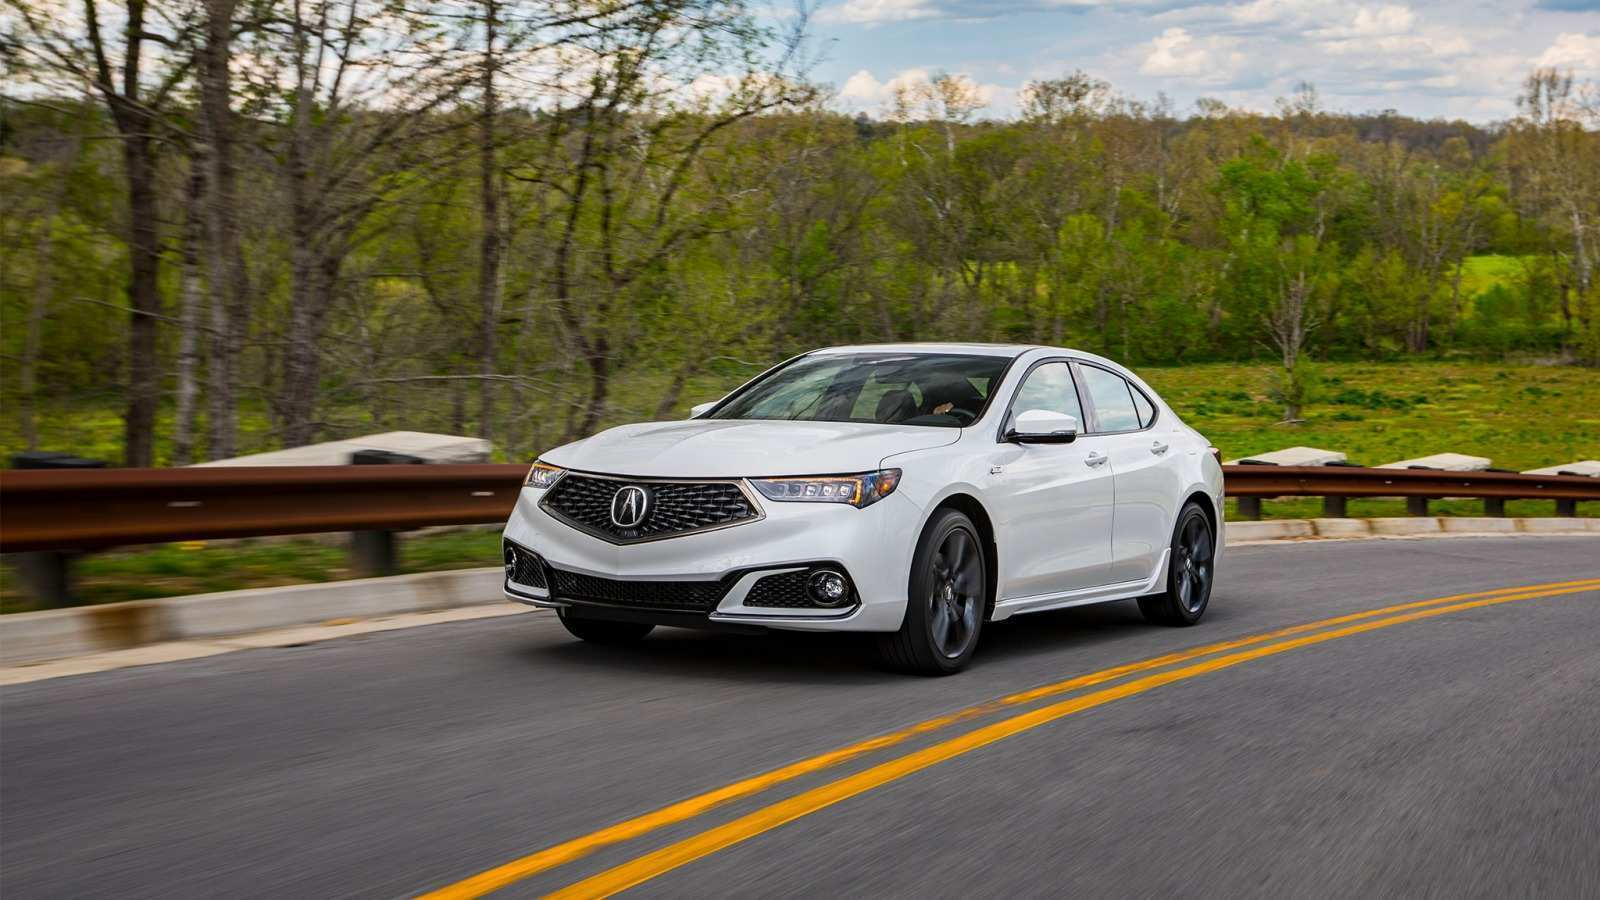 84 The Best 2019 Acura Tl Price And Review